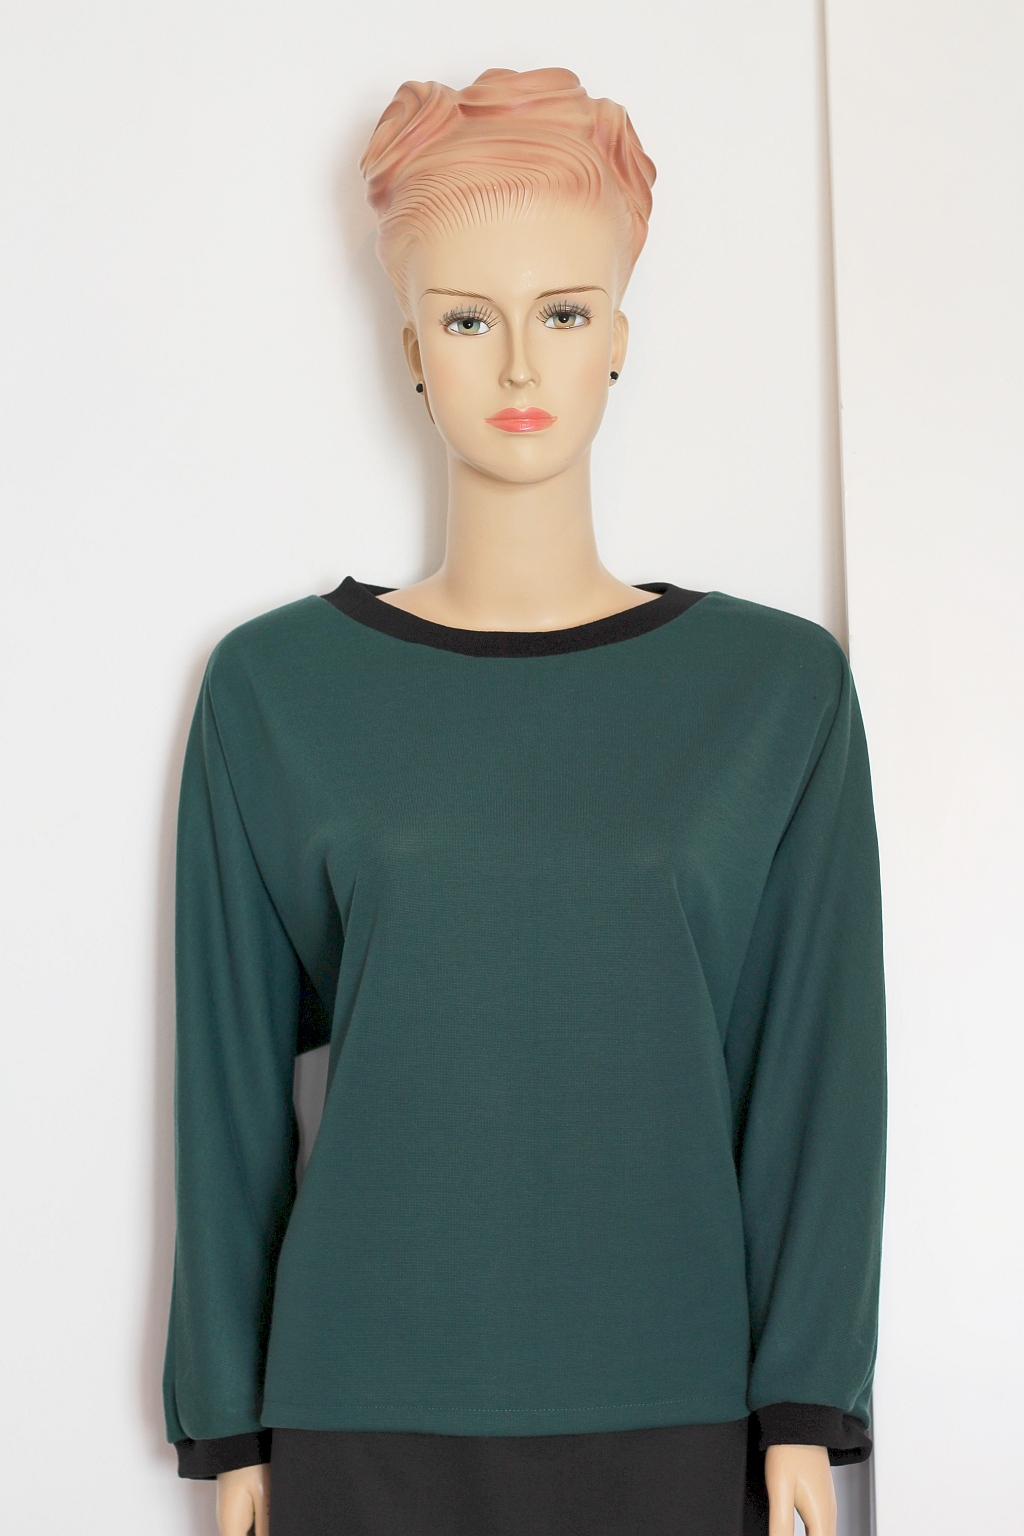 Burda Sweater